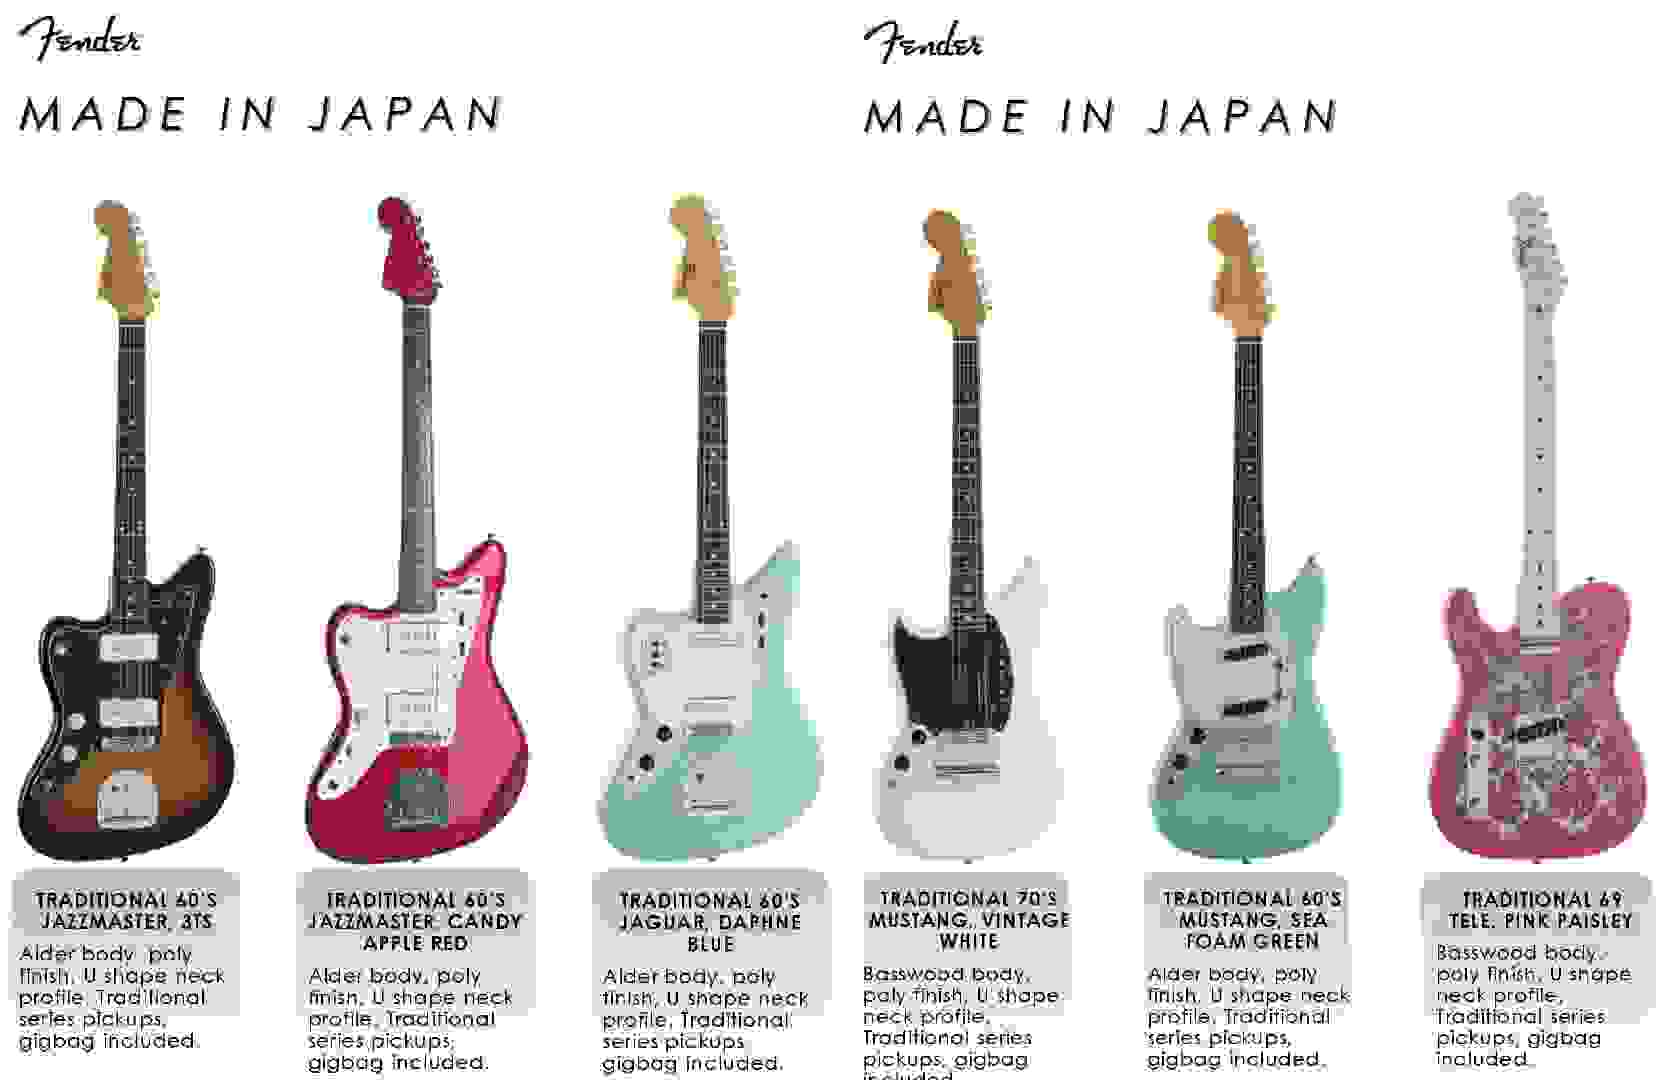 Fender Left-Handed Special Run - Made in Japan